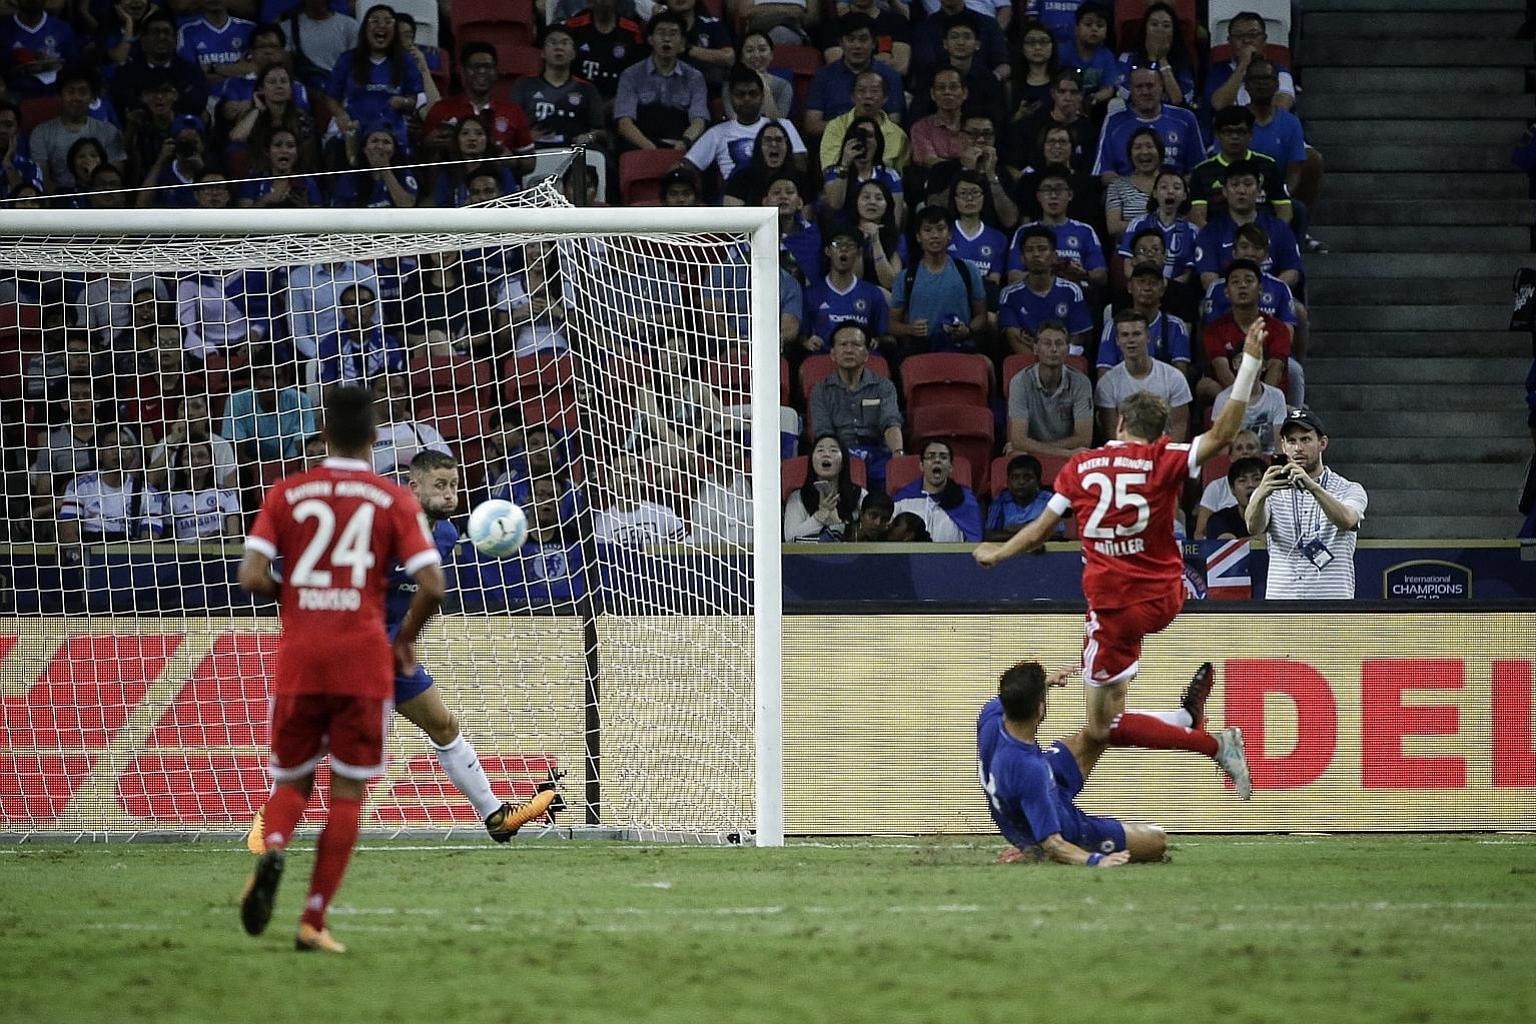 Bayern Munich forward Thomas Muller (jersey No. 25) slamming the ball home for his club's second goal in their 3-2 win over English Premier League champions Chelsea in the first match of the International Champions Cup at the National Stadium last ni